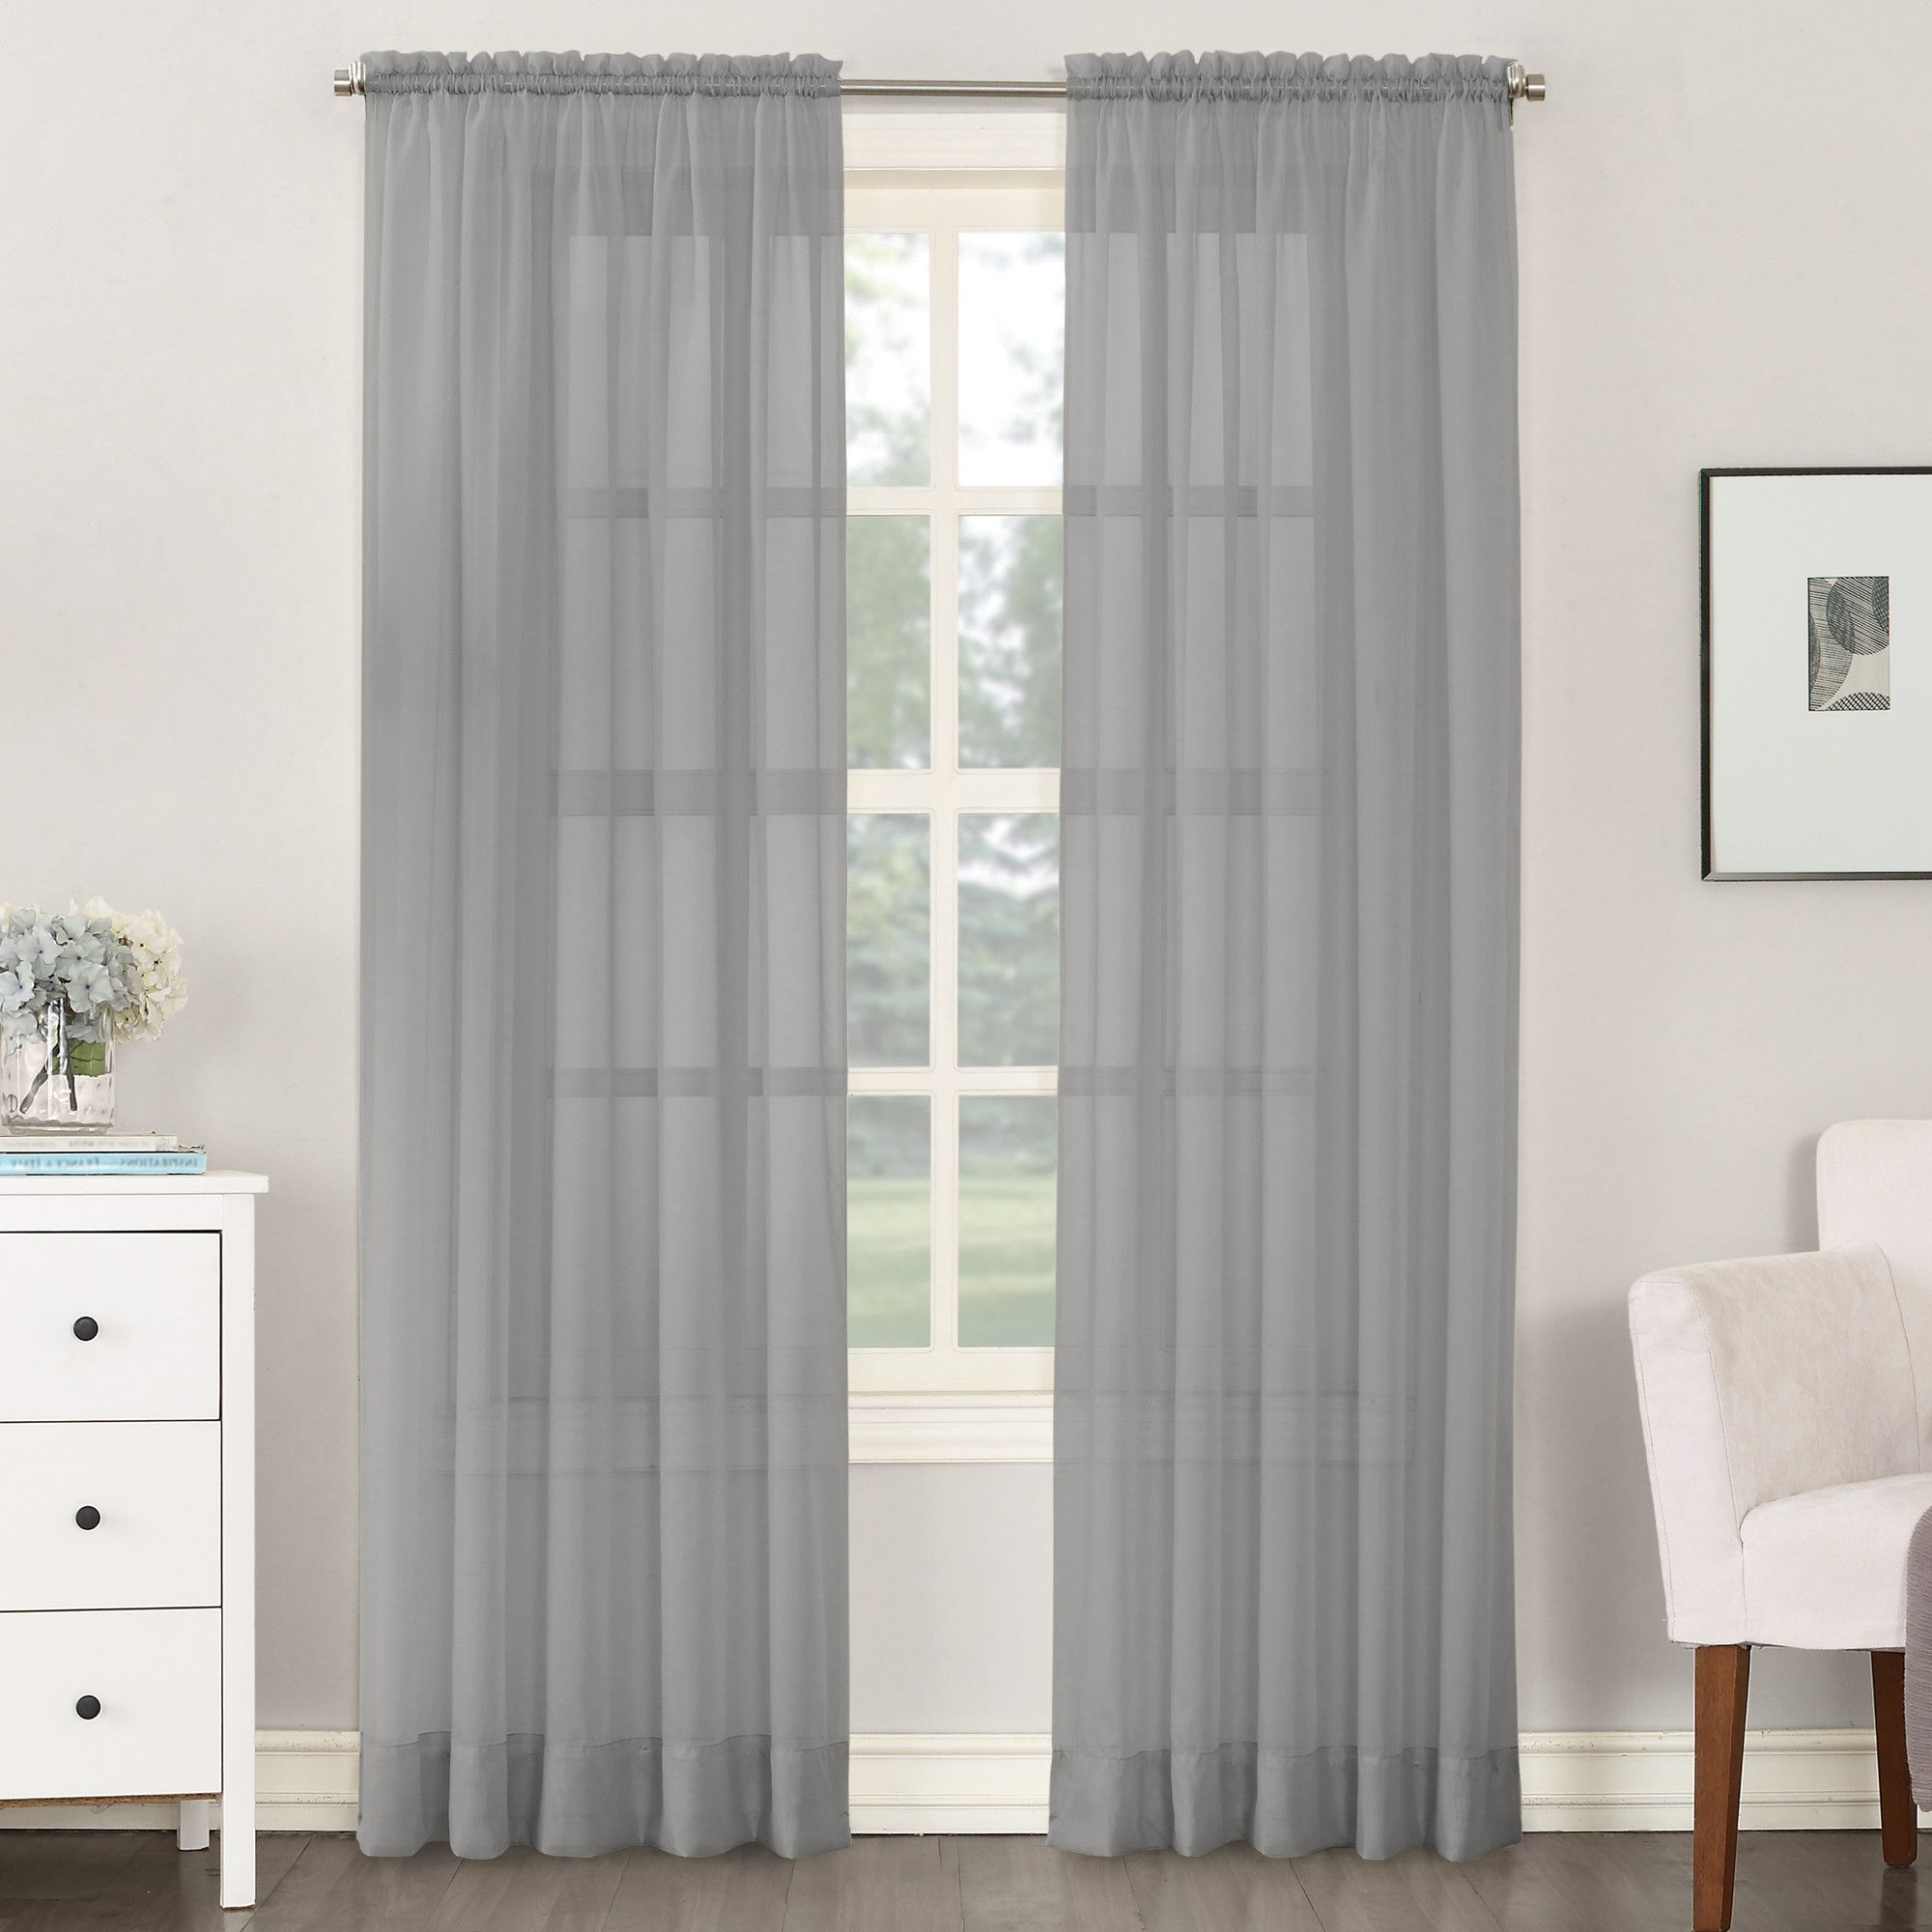 Overseas Leaf Swirl Embroidered Curtain Panel Pairs Regarding 2021 Sheer Voile Solid Rod Pocket Single Curtain Panel (View 19 of 21)